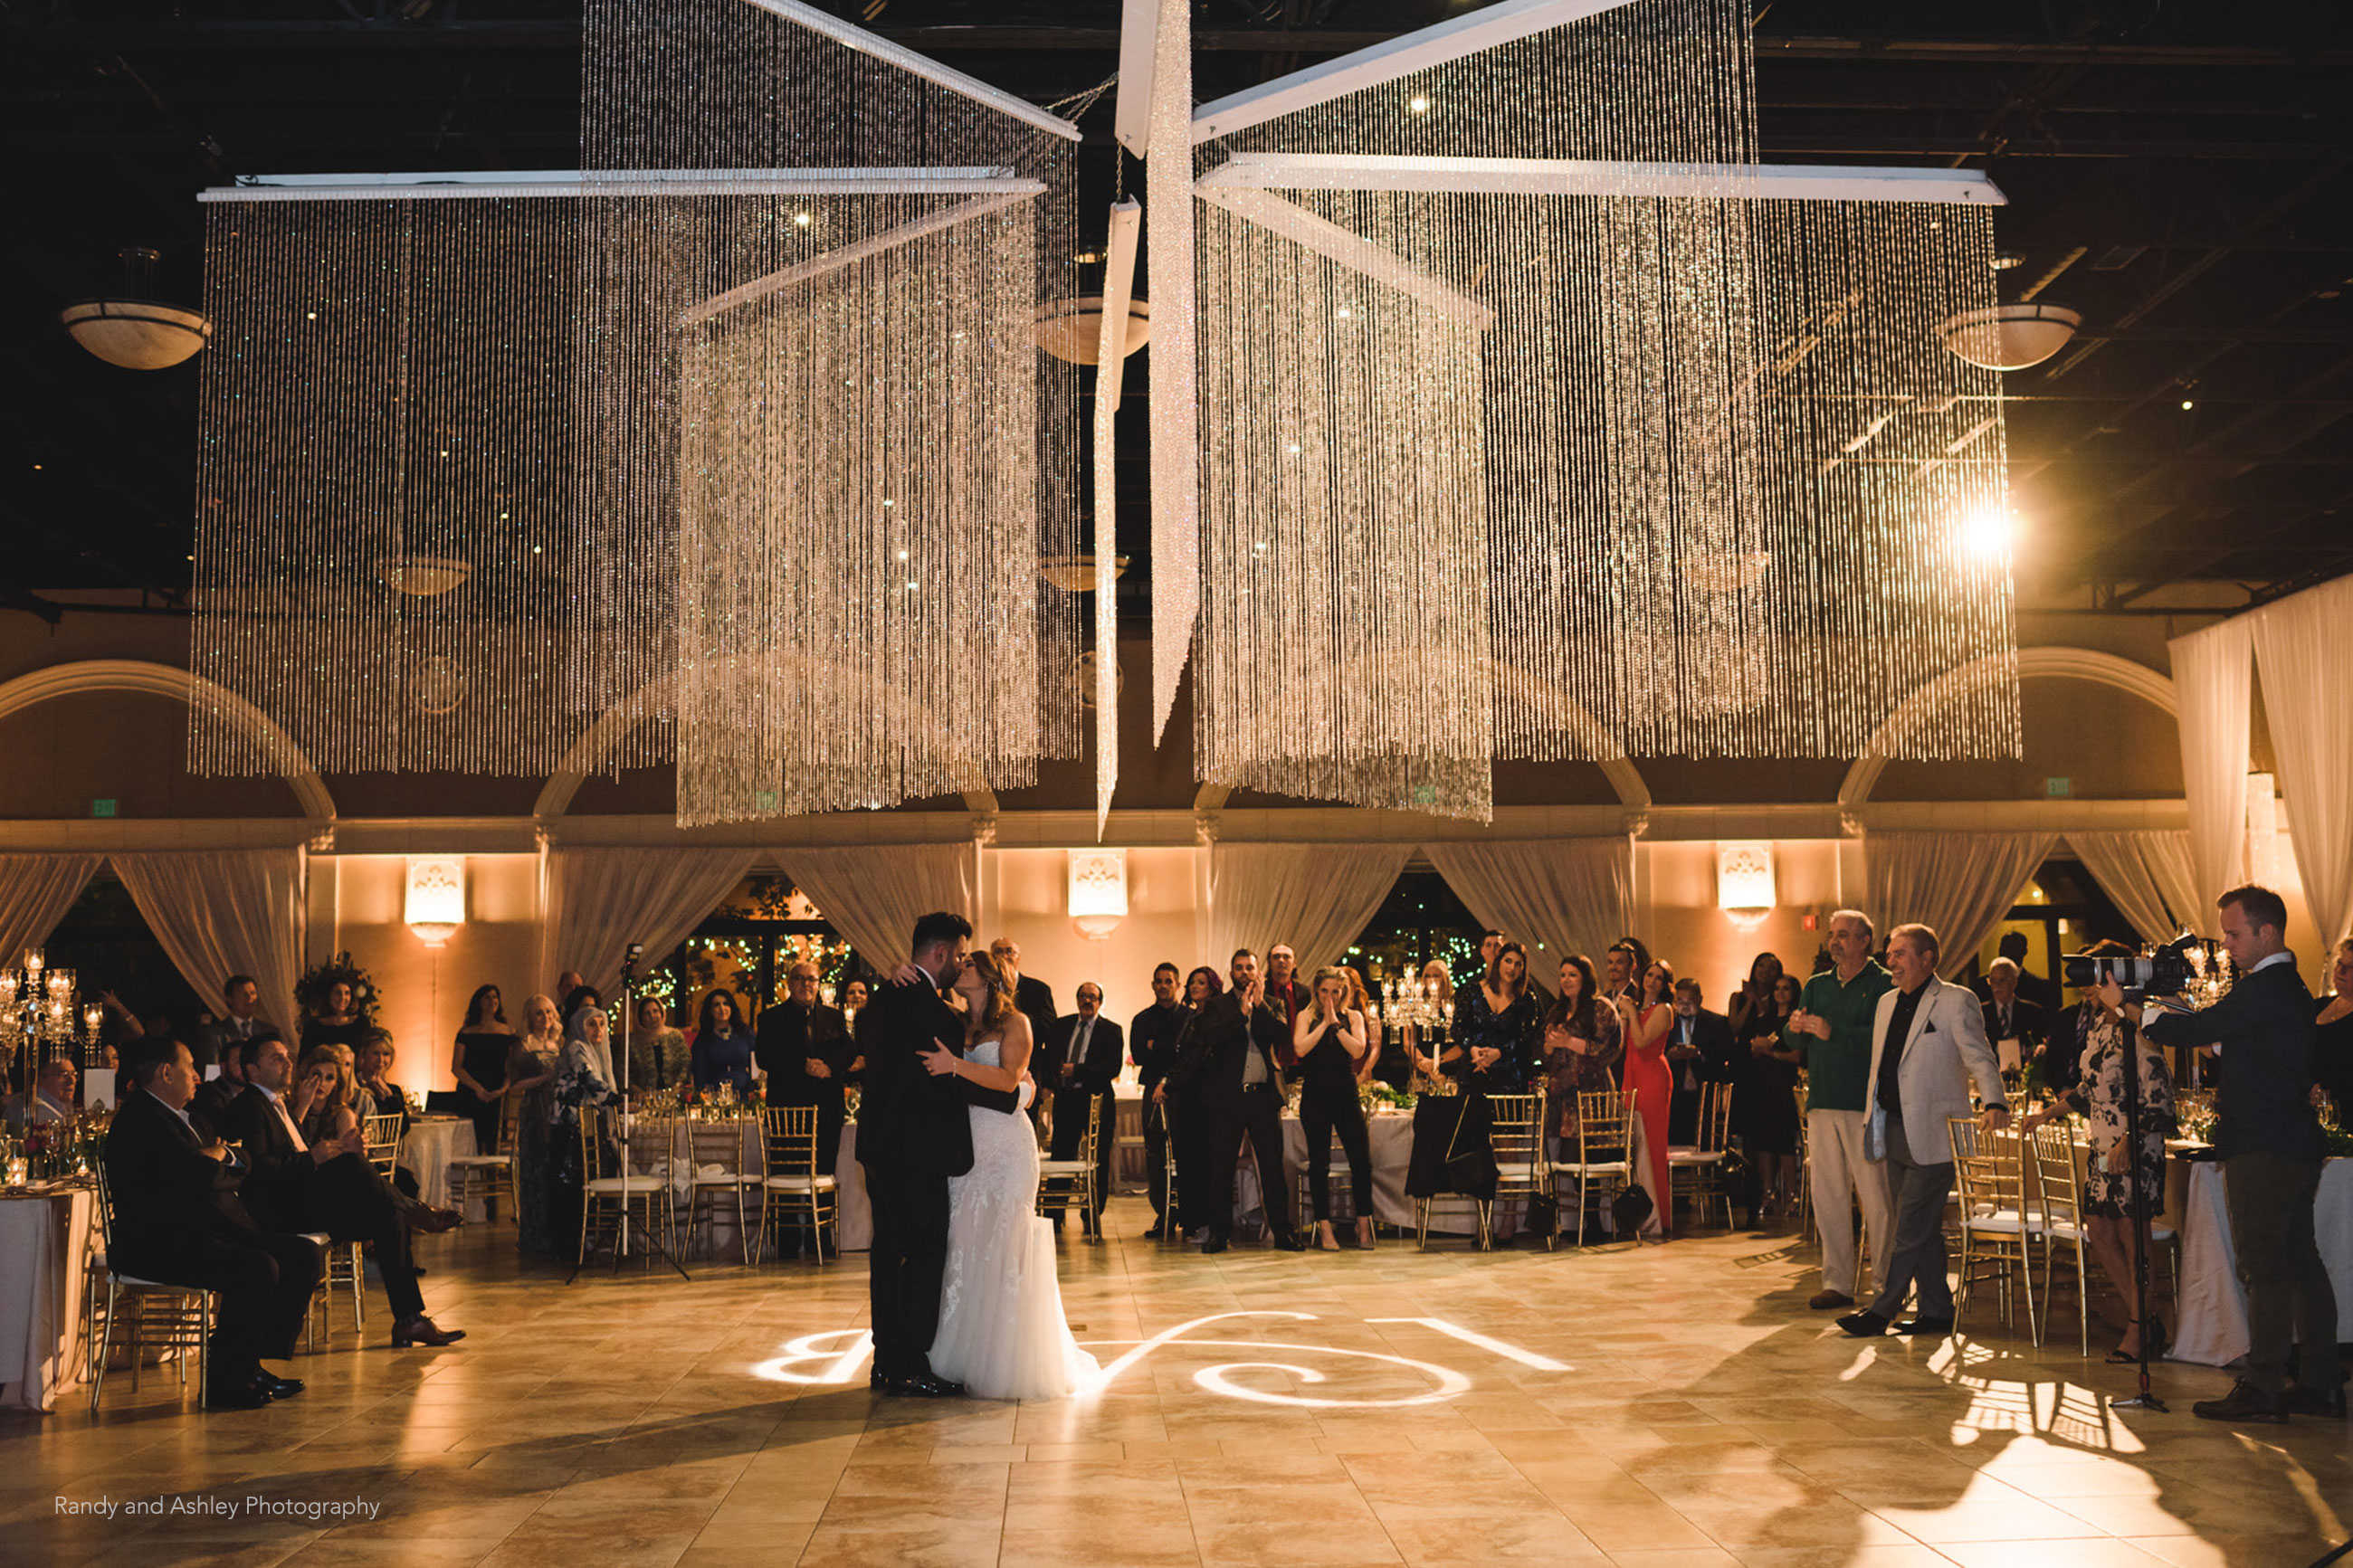 Beautiful first dance with overhead star chandelier during wedding reception at Casa Real at Ruby Hill Winery (www.casarealevents.com).  Photo by: Randy and Ashley Photography; Lighting: Fantasy Sound Event Services